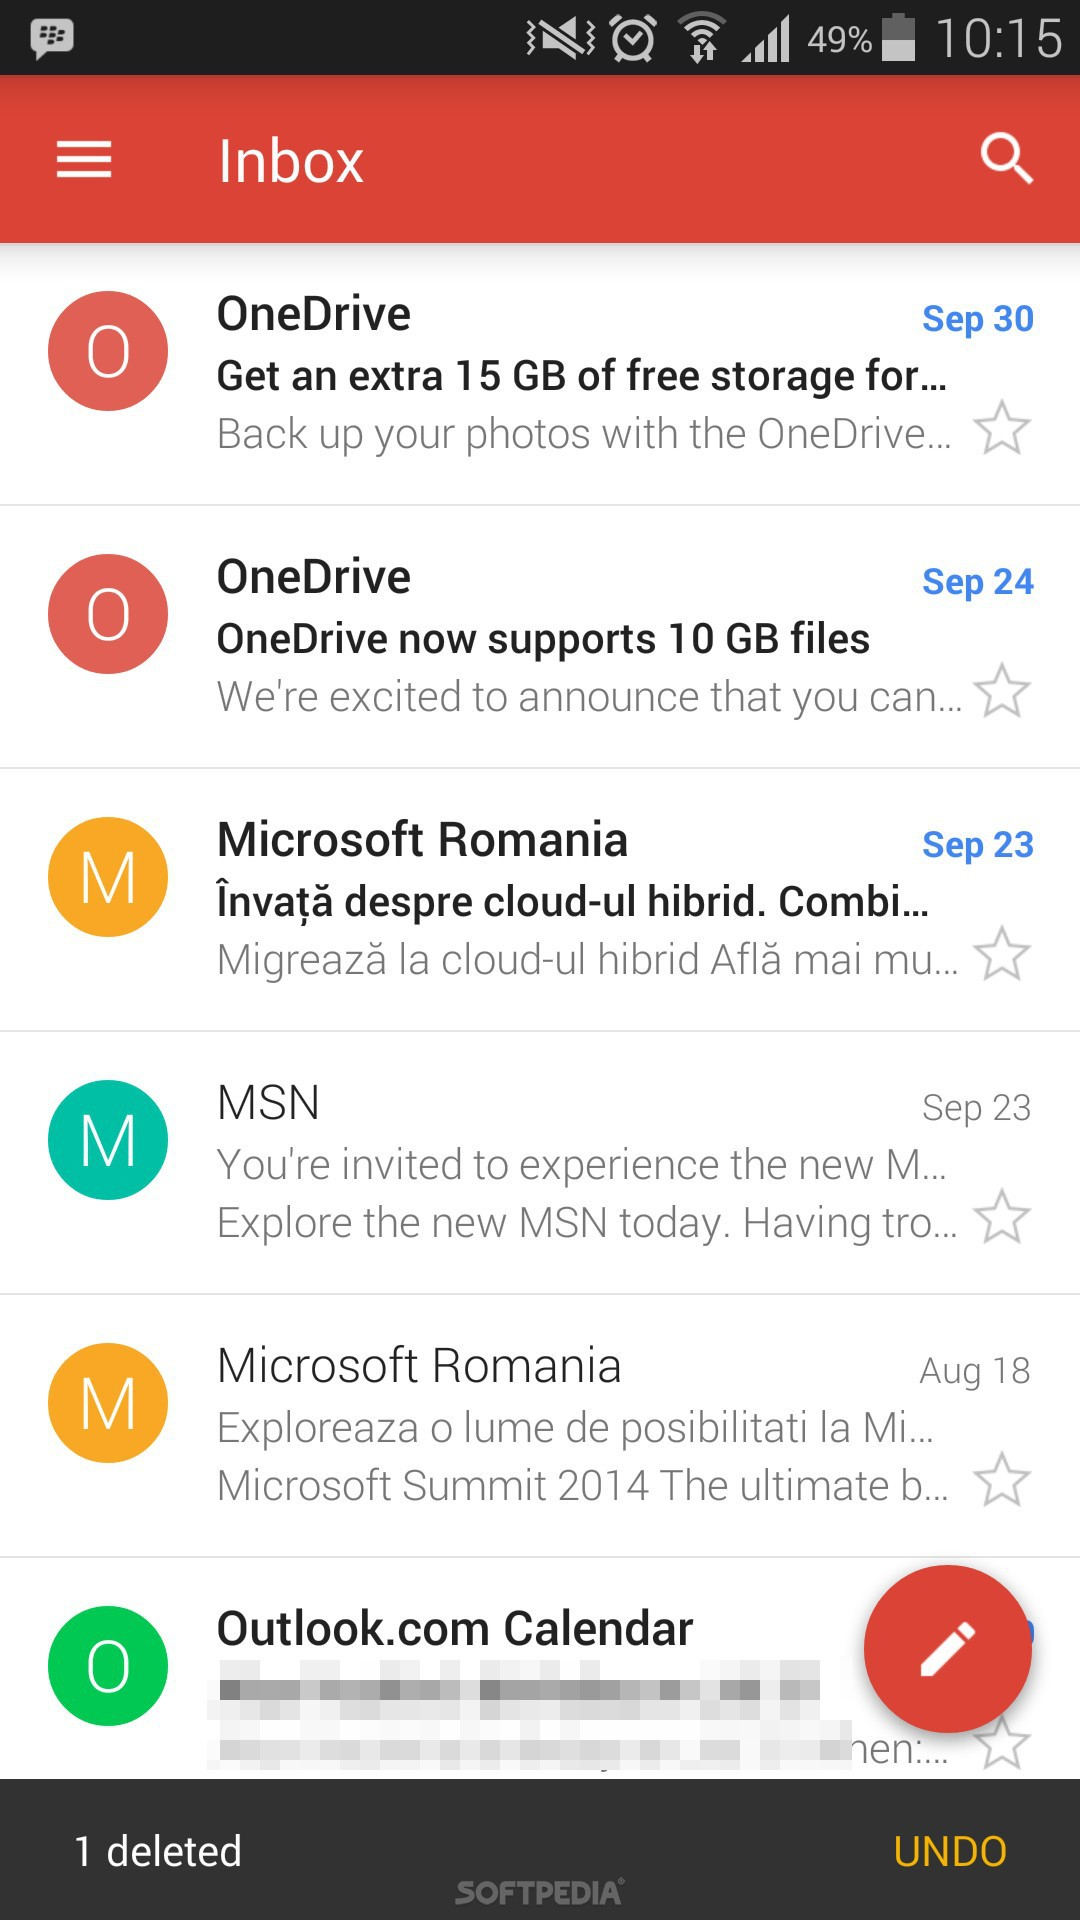 Gmail 5 0 For Android With Exchange Amp Outlook Support Out